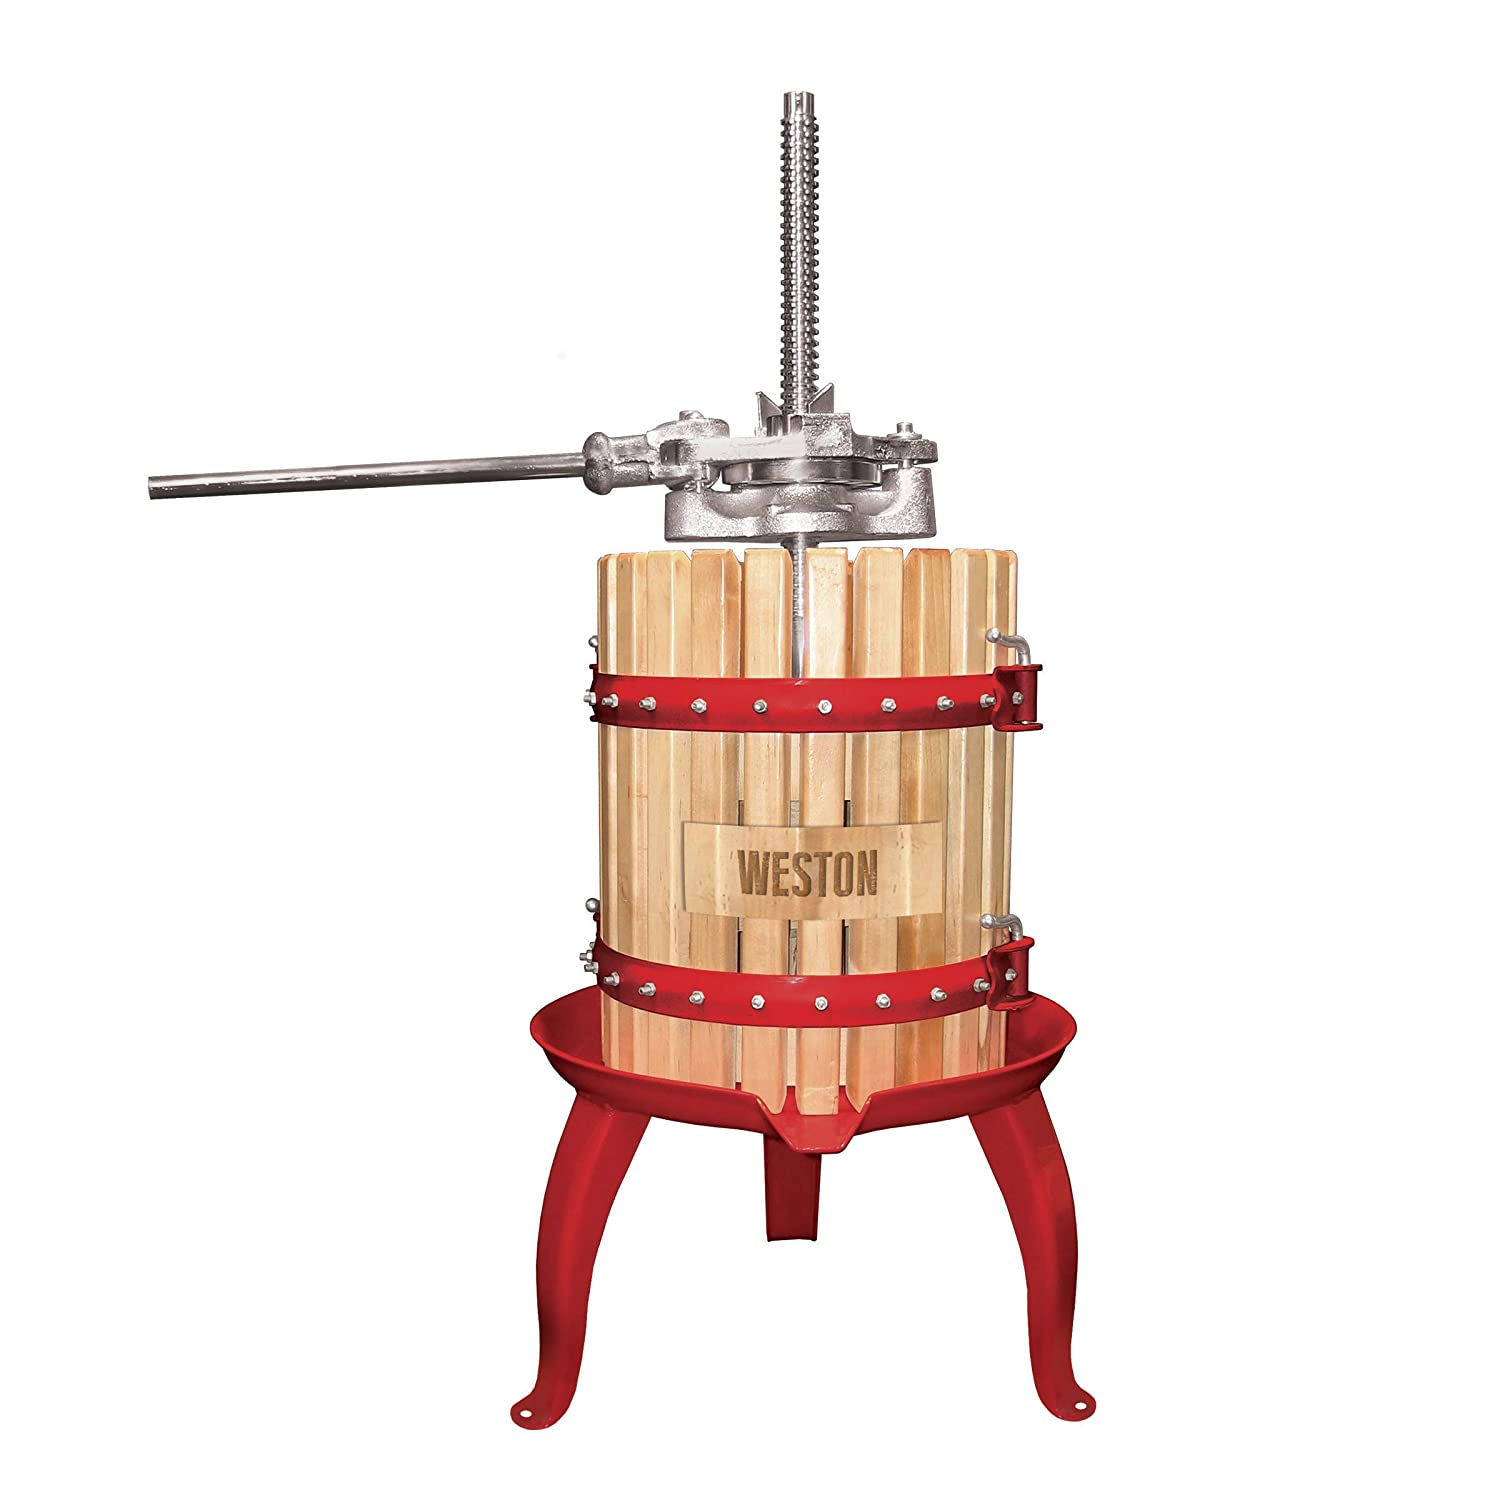 Weston 05-0101 4 Gallon Fruit and Wine Press, with Blocks, for for Juice and Cider